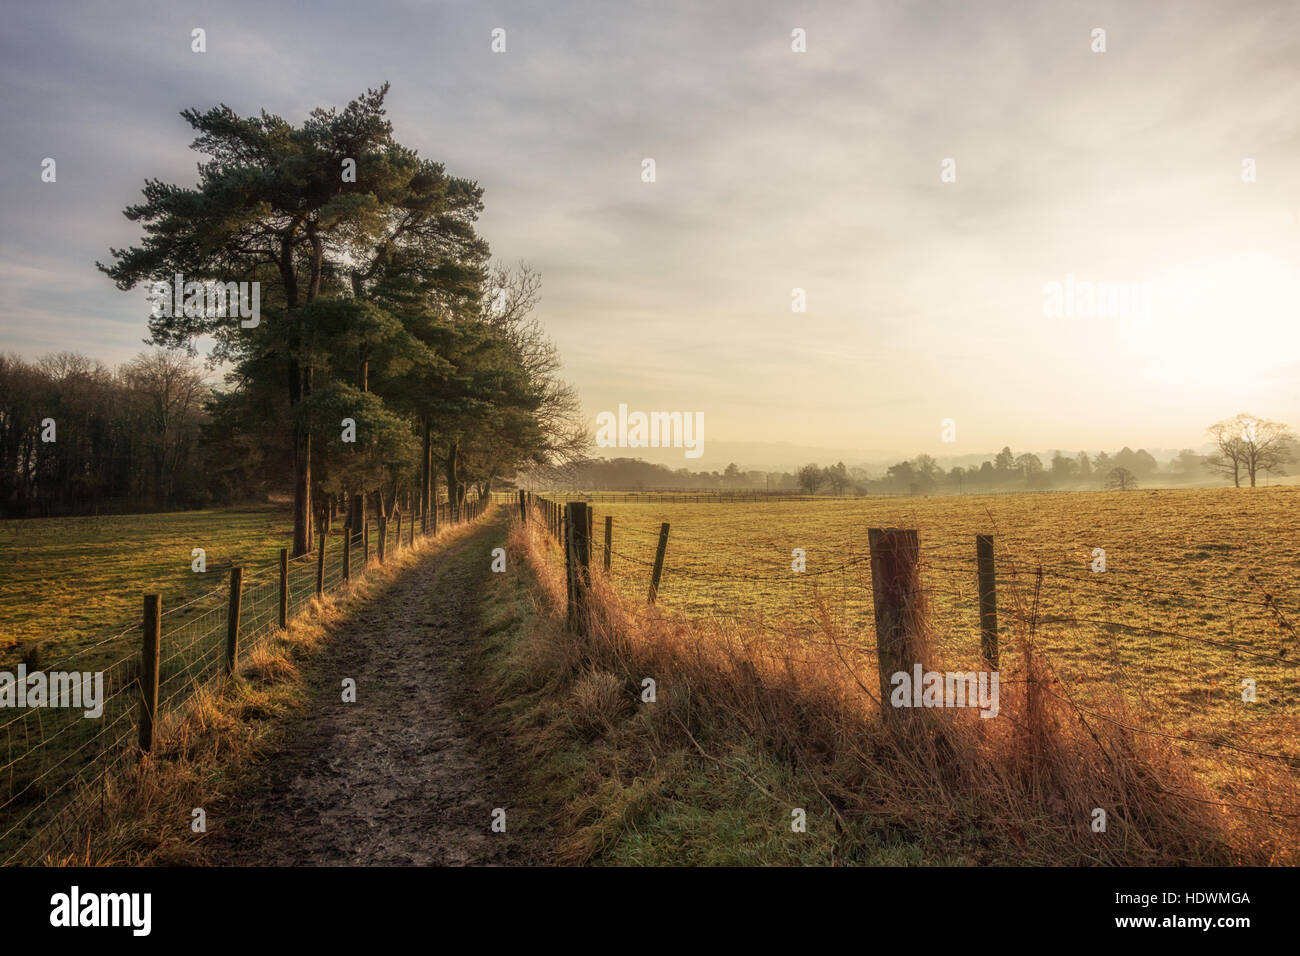 UK COUNTRYSIDE: Early morning light on a country path lined with Scots pine trees, Ilkley, West Yorkshire, England, - Stock Image